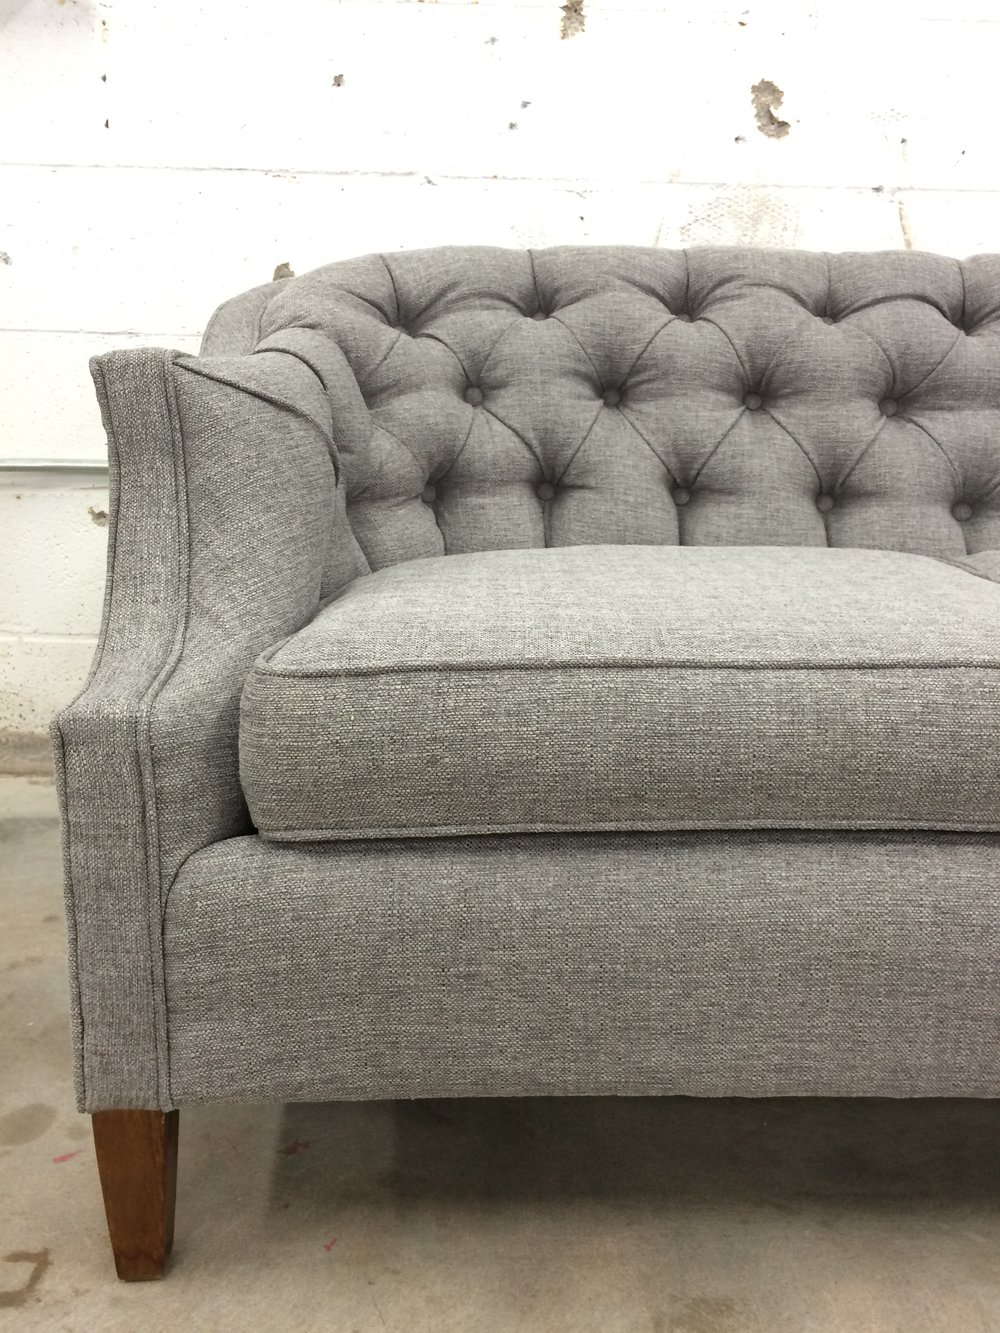 gray tufted vintage sofa